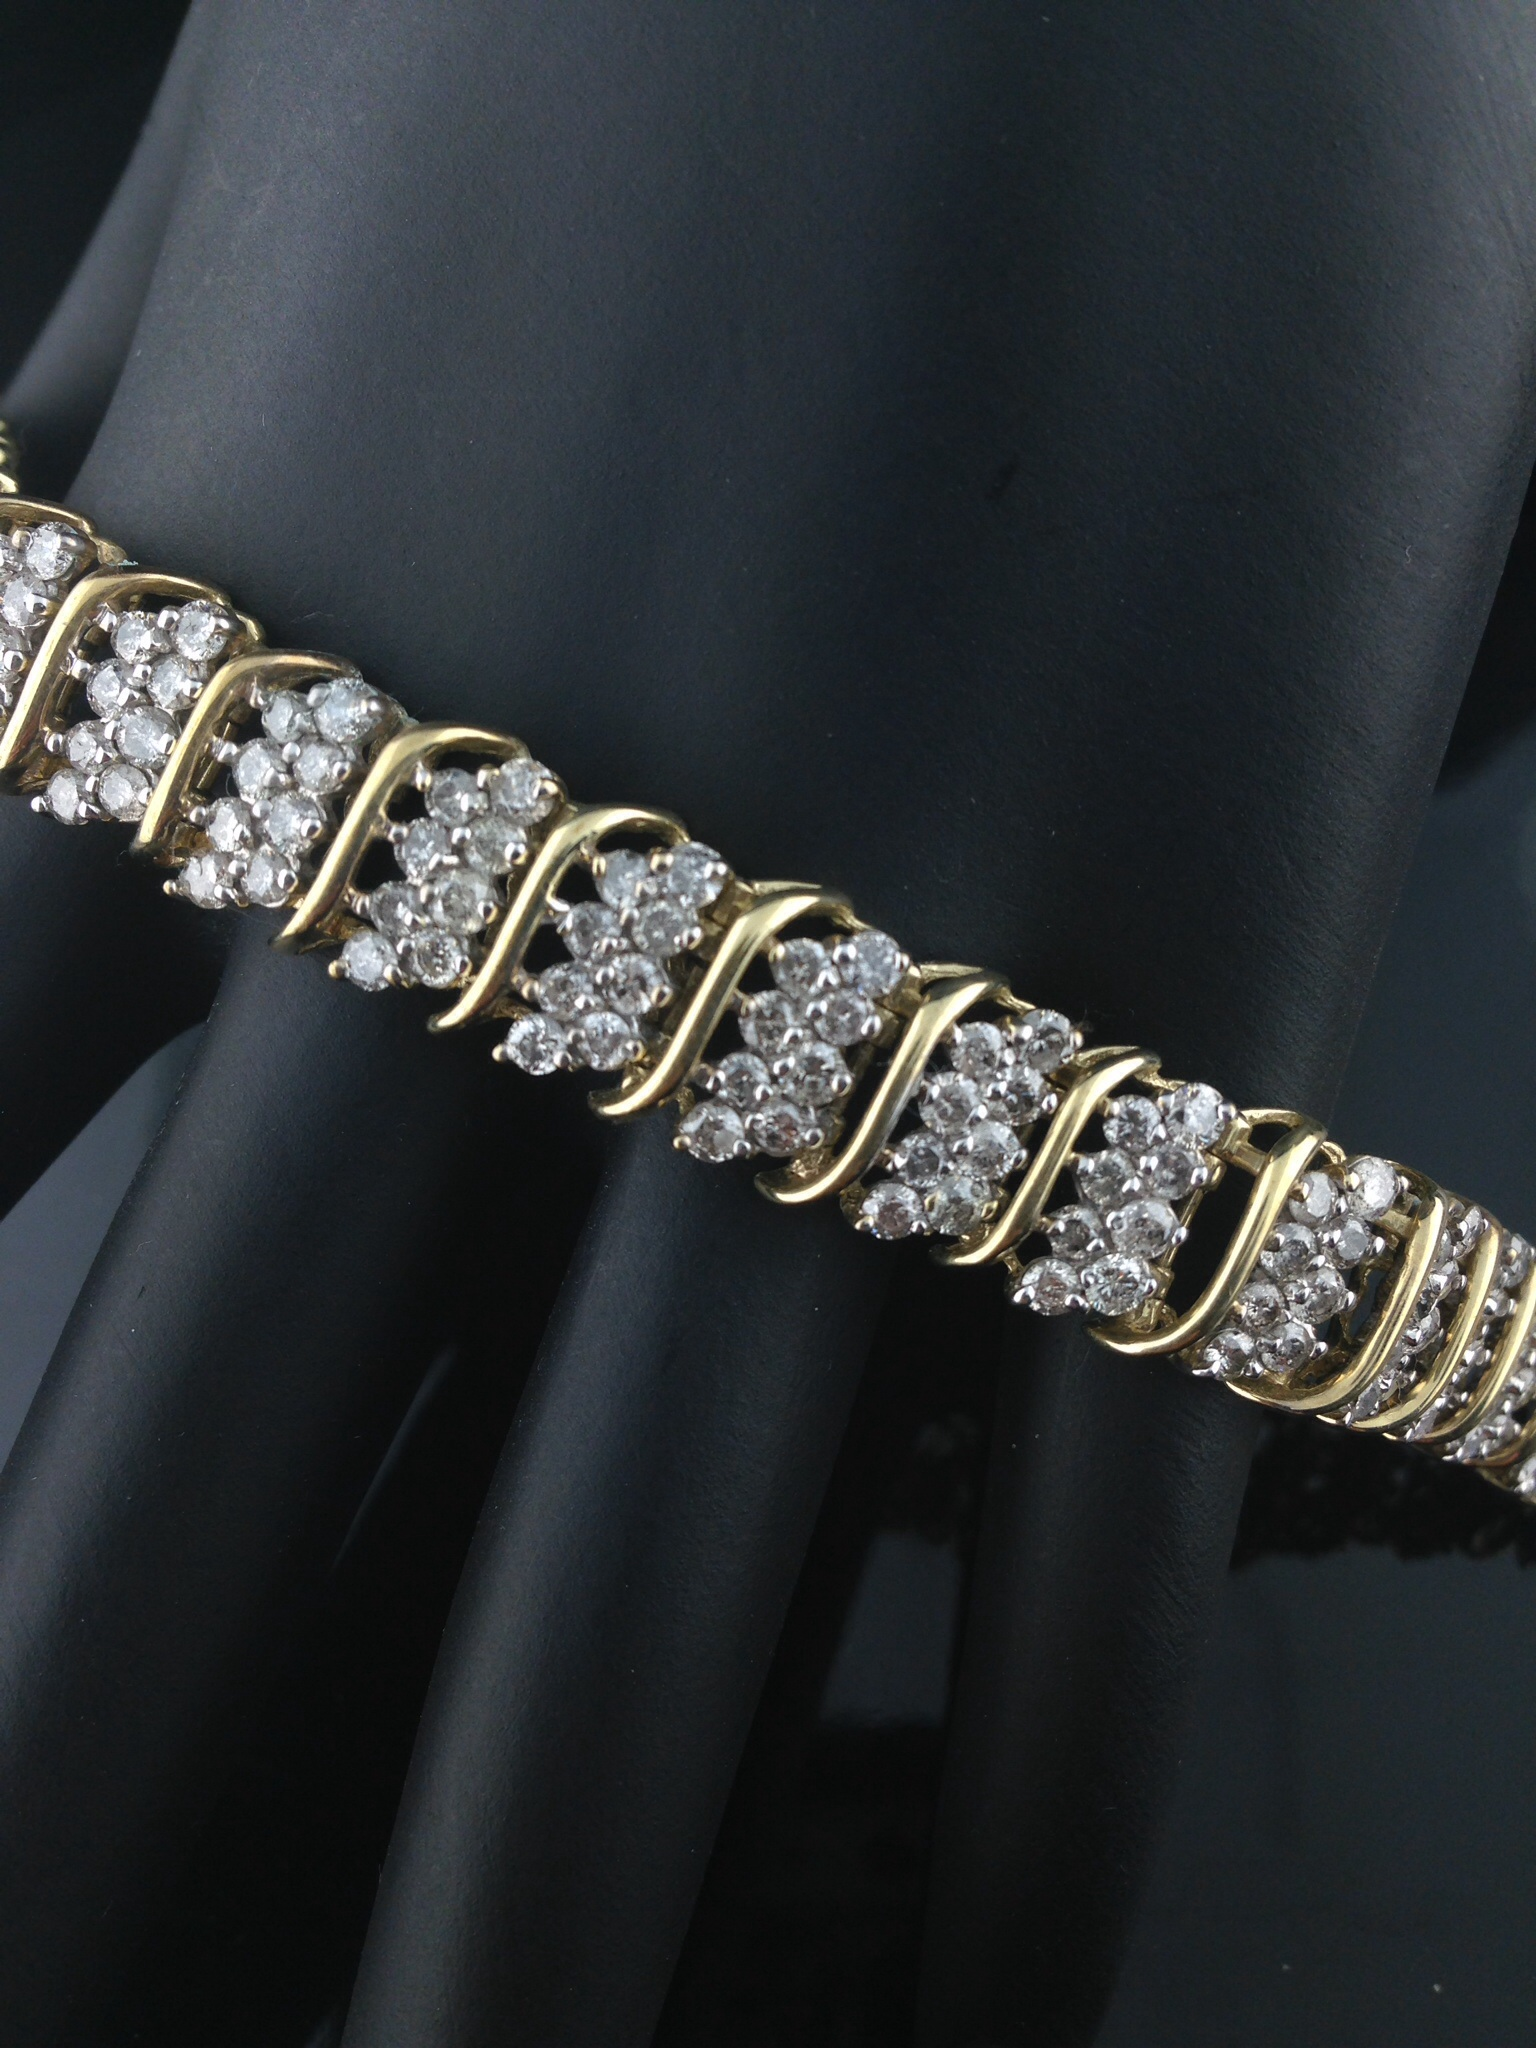 5.0 CT. Diamond Cluster Bracelet